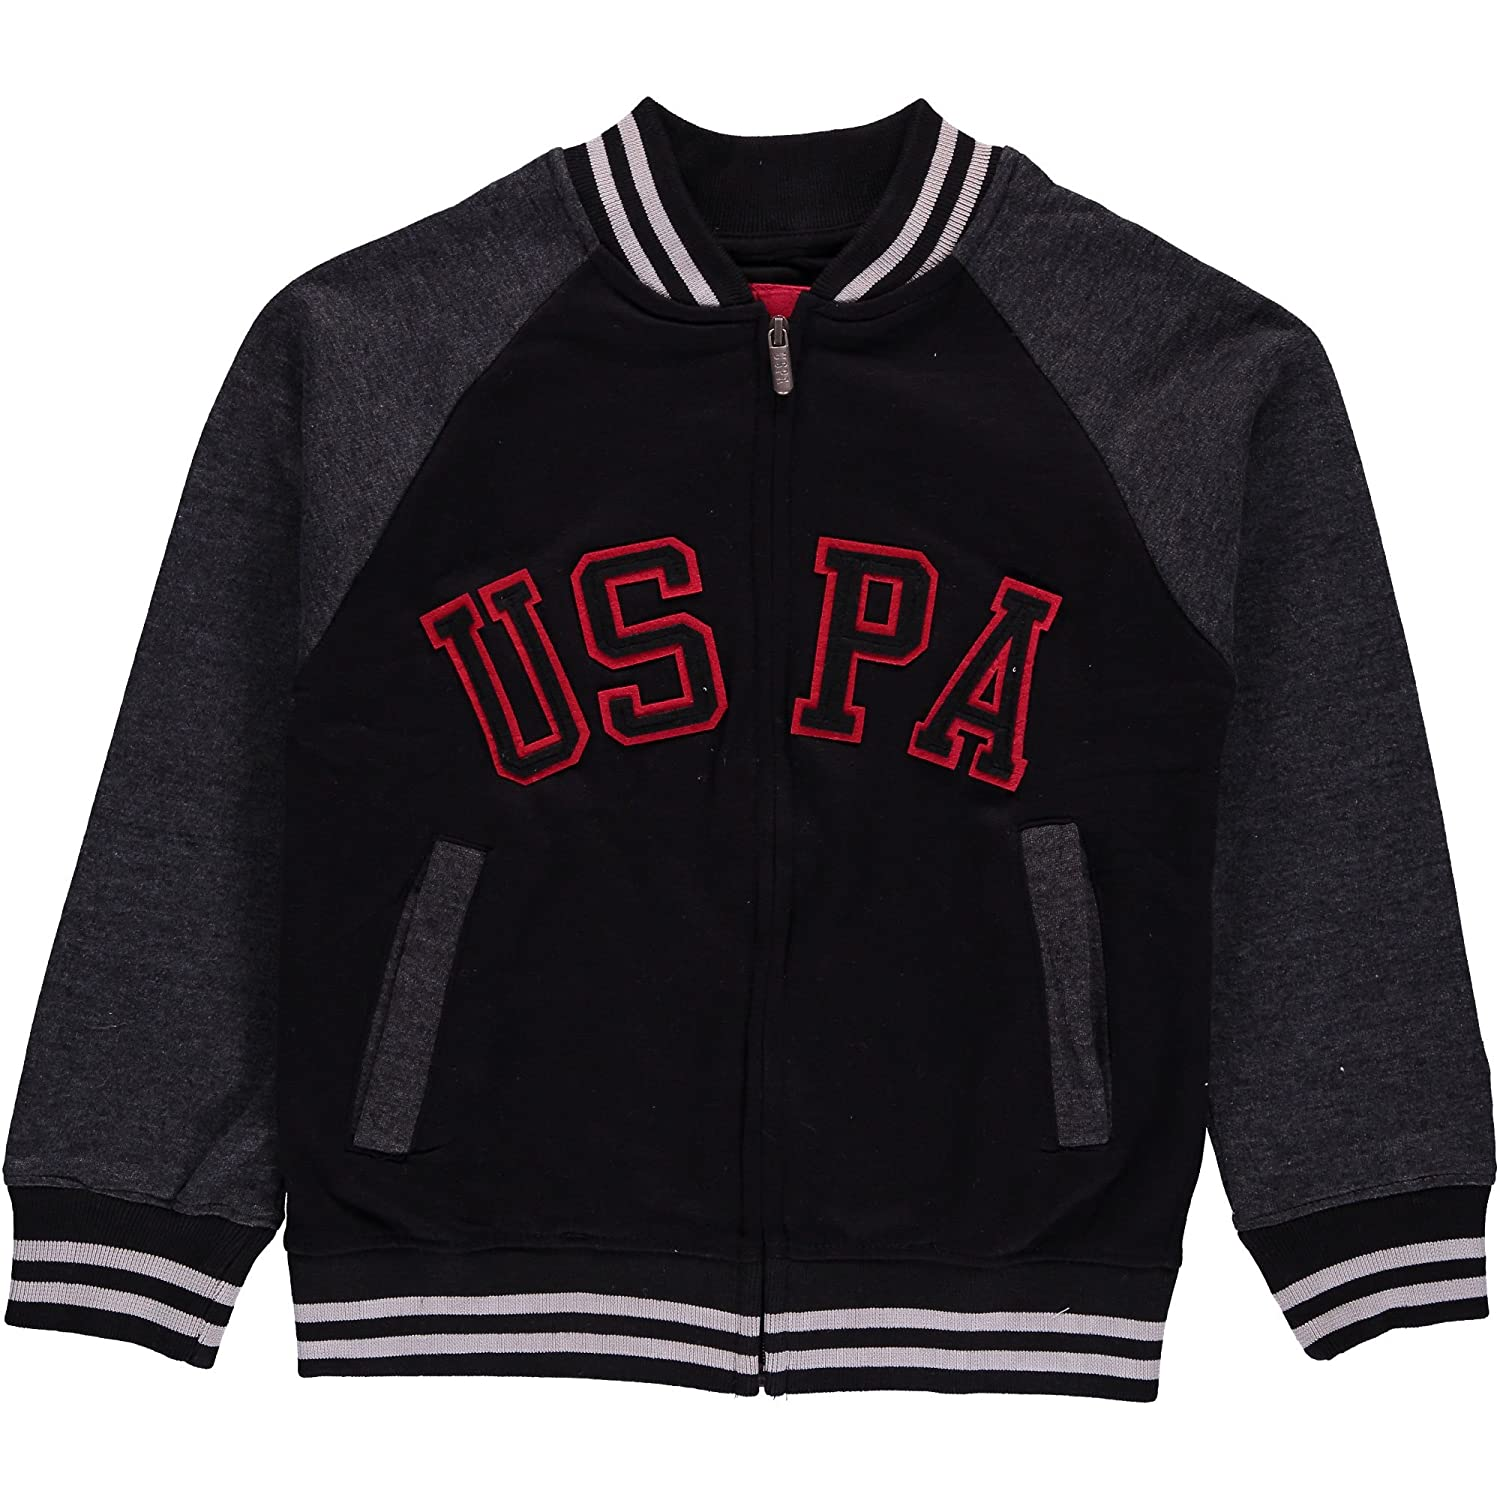 U.S. Polo Assn. Big Boys' Color-Block Fleece Jacket US Polo Association Boys 8-20 JJ00